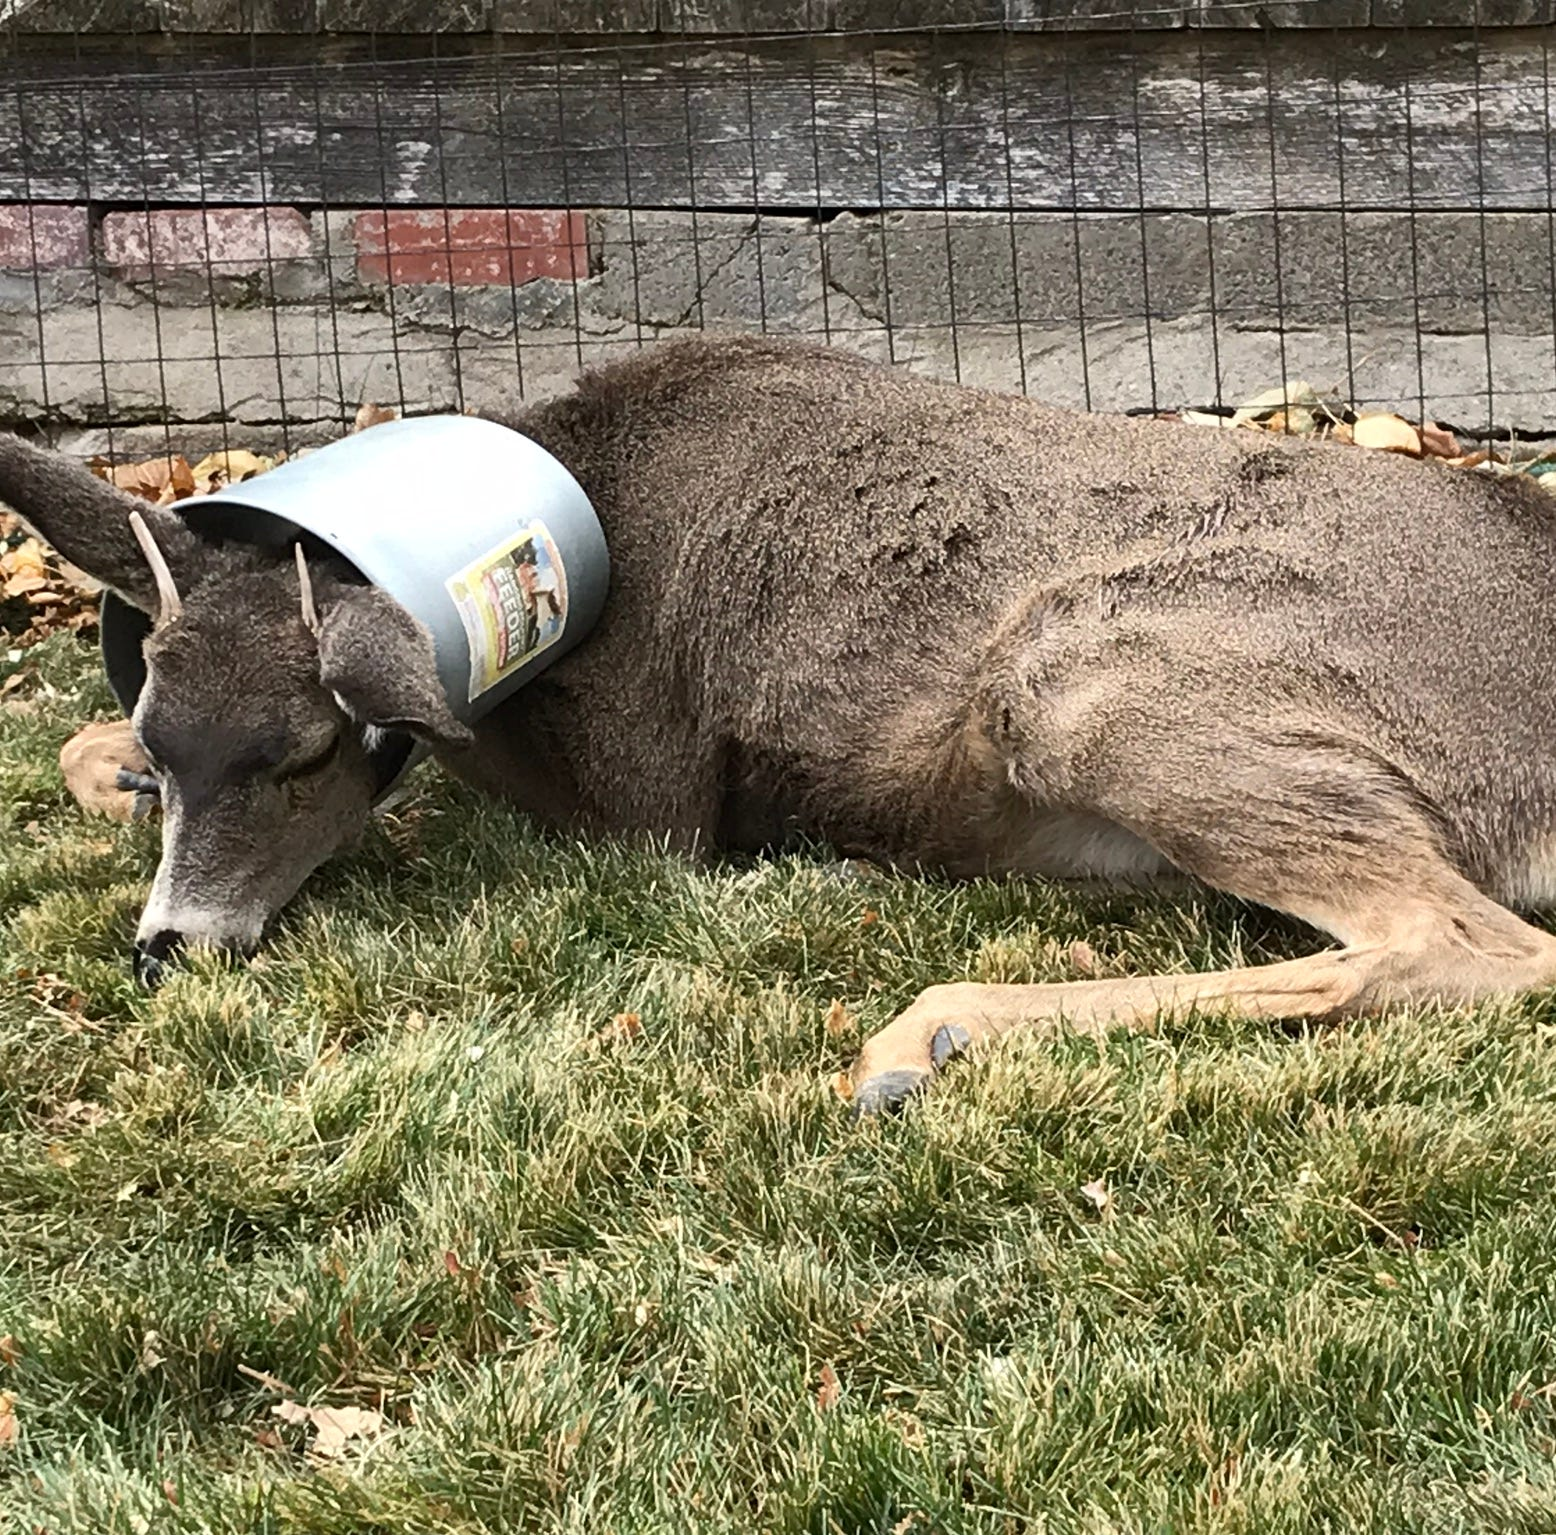 Biologists bail deer out of bucket-related jam